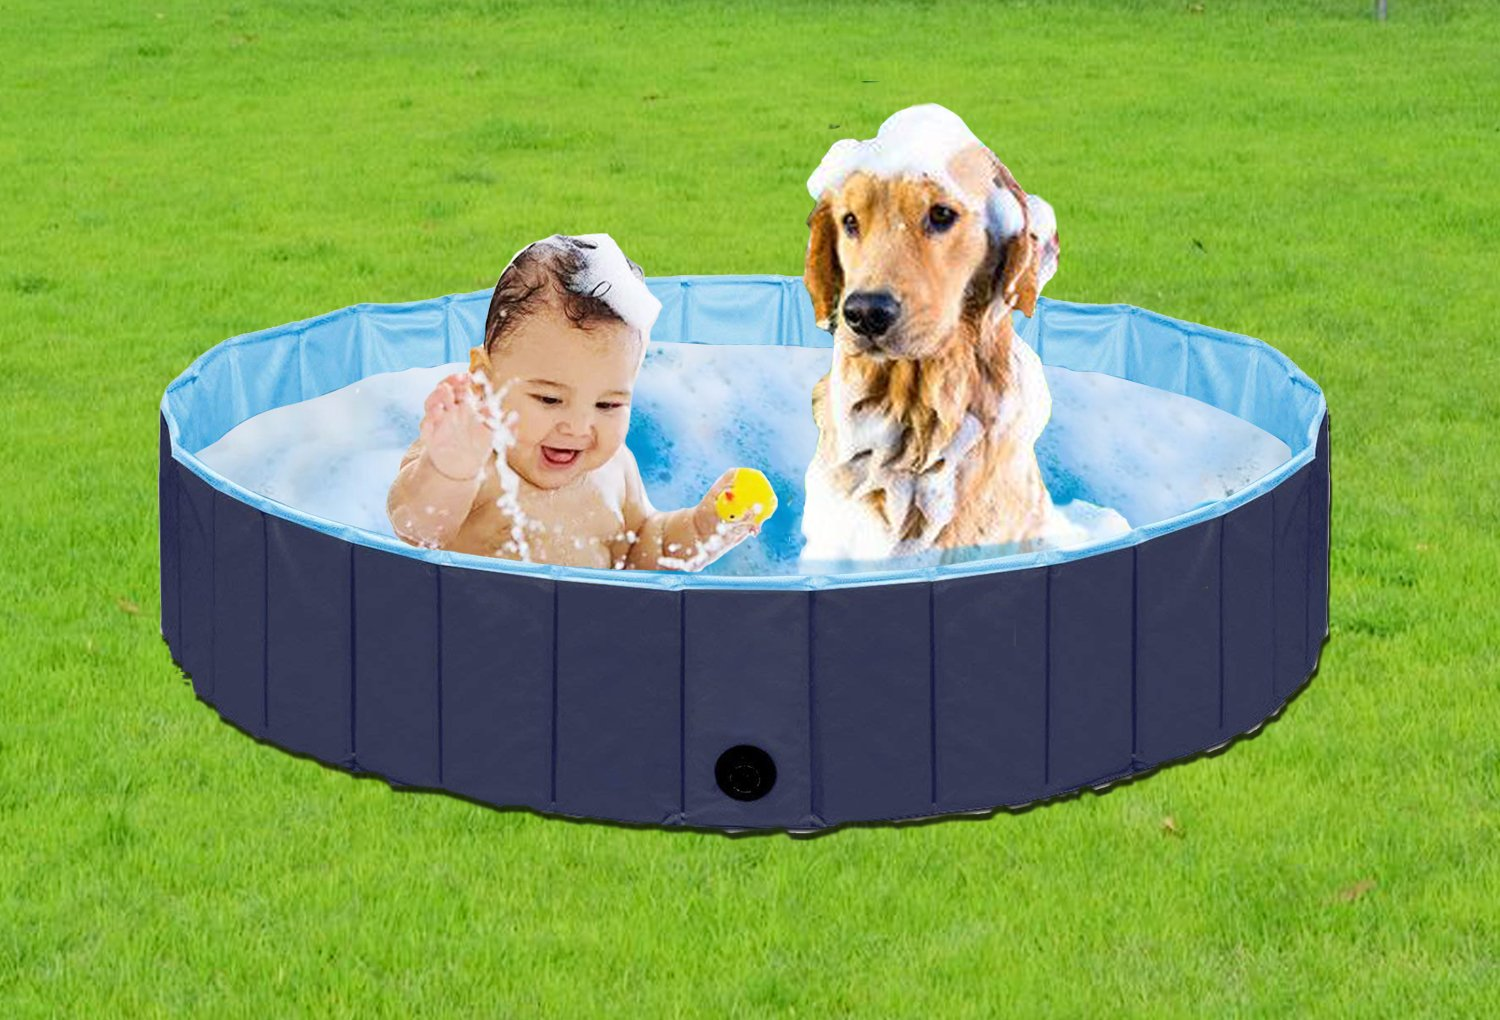 Paws of Mind Foldable & Portable Outdoor Swimming Pool, Bathing Tub, for Pets & Toddlers, by, Extra Large 63 x 12 in, Dog Cat Whelping Box